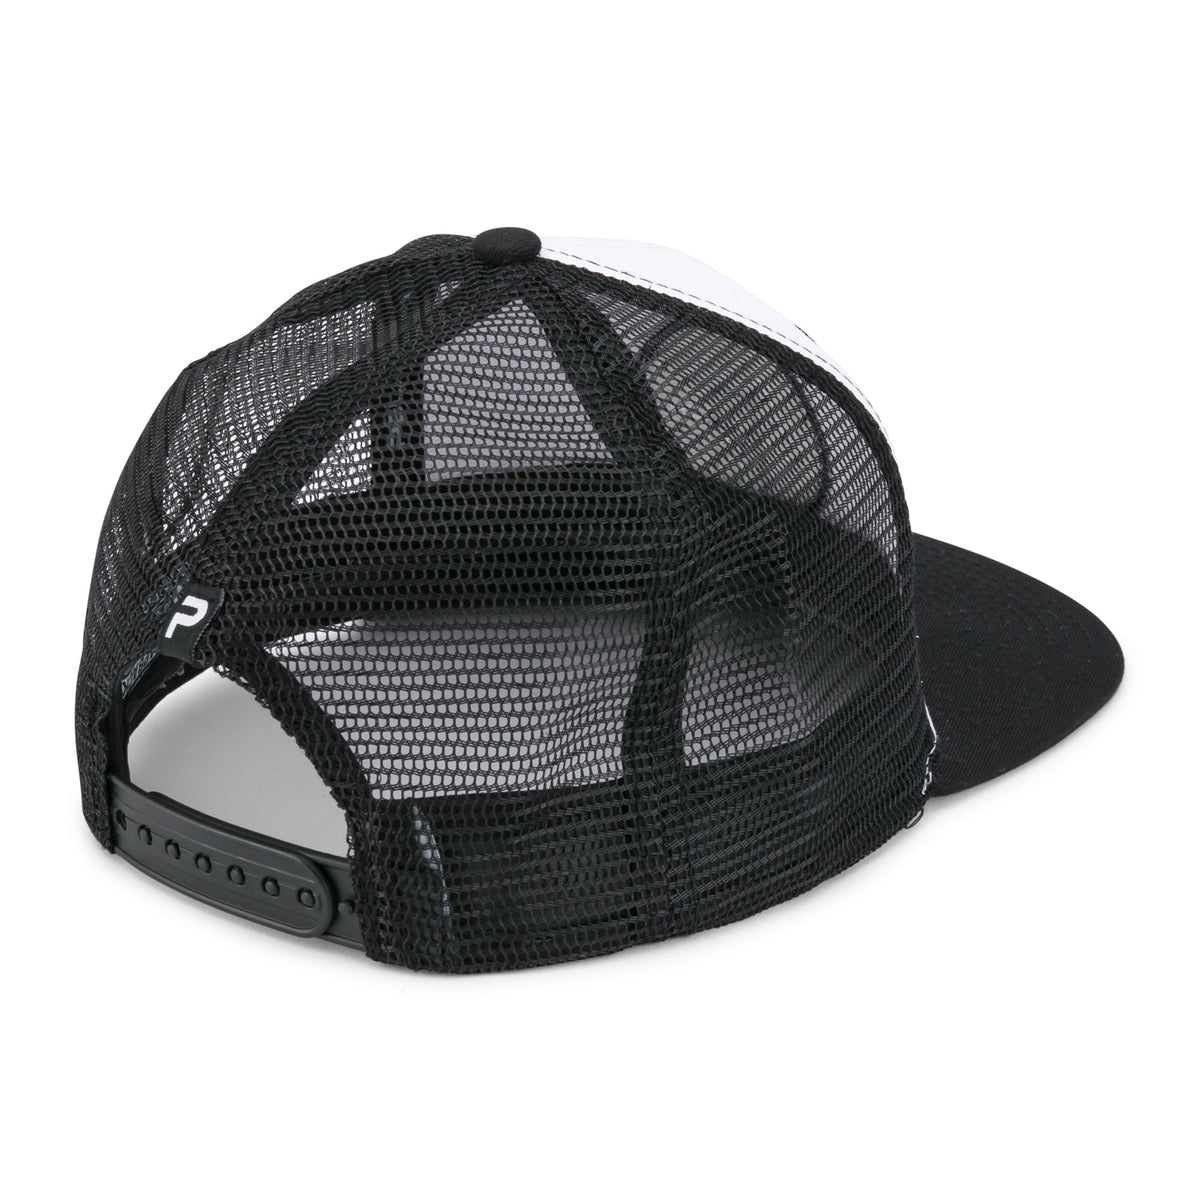 Icon Snapback Fishing Hat Big Image - 2